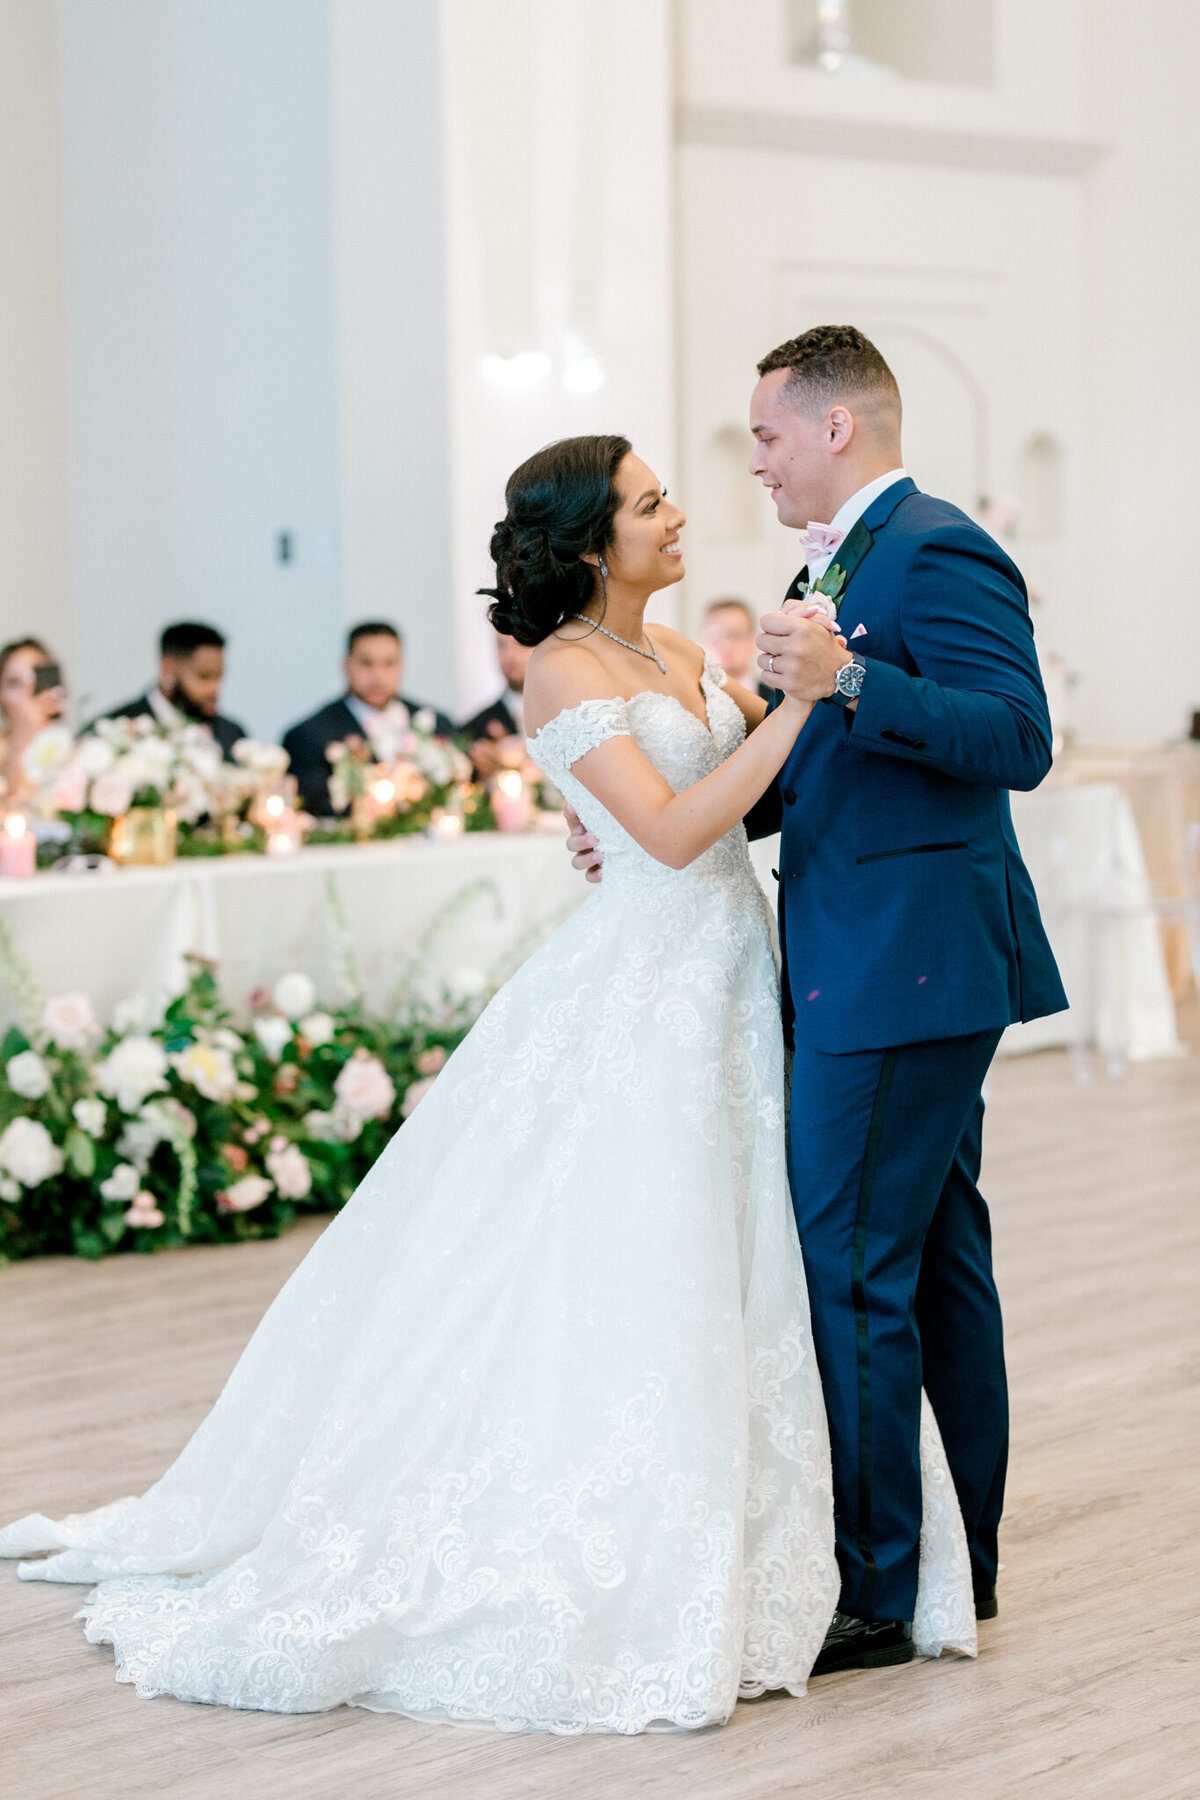 Jasmine & Josh Wedding at Knotting Hill Place | Dallas DFW Wedding Photographer | Sami Kathryn Photography-145